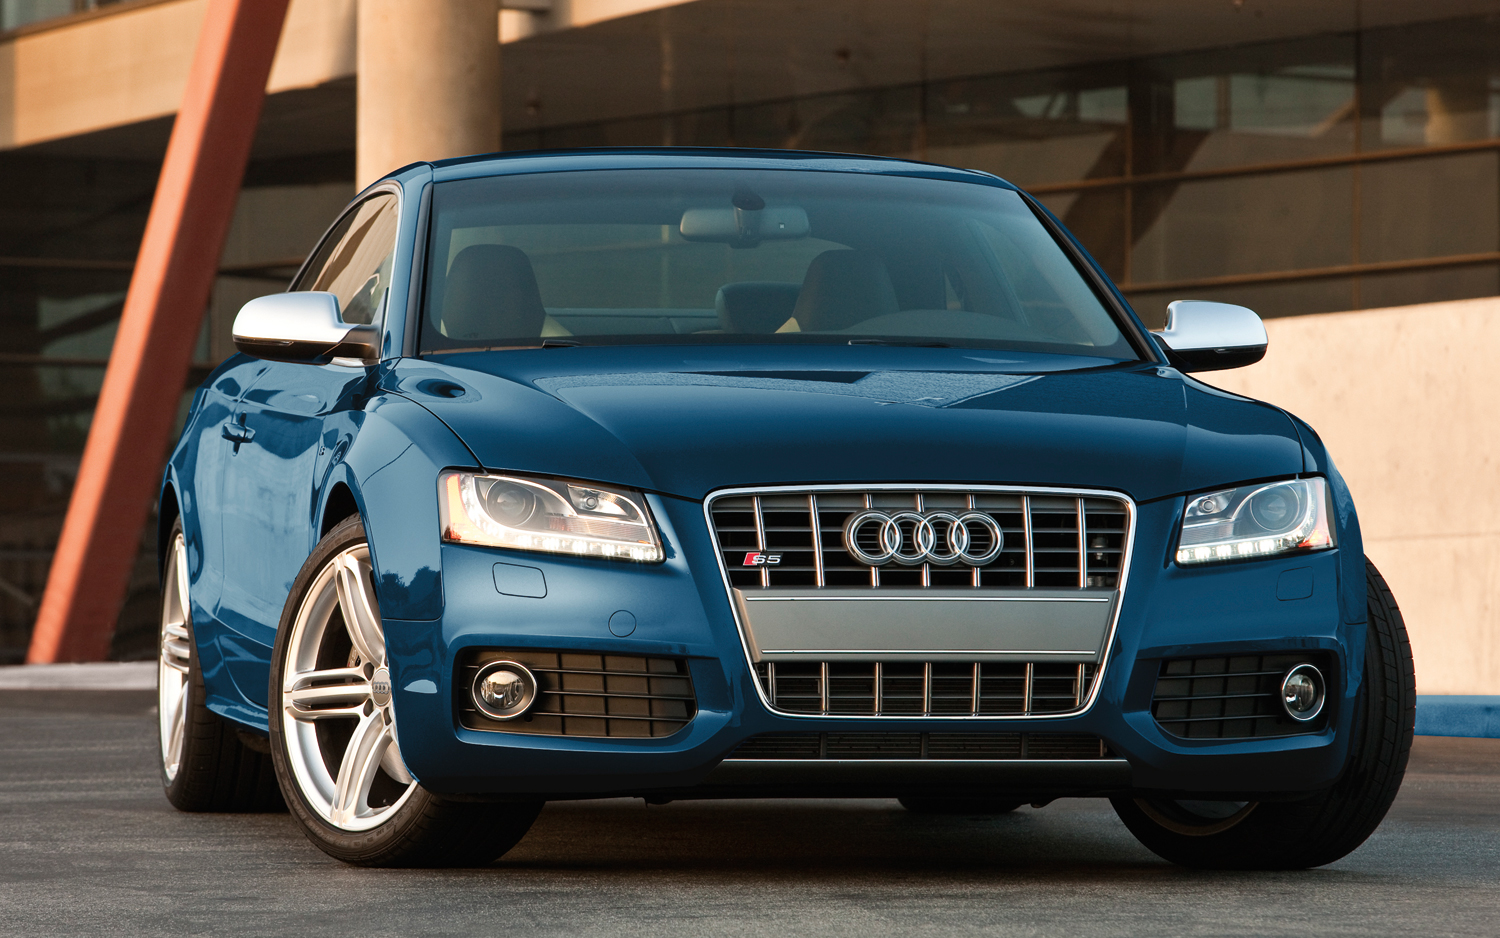 2012 Audi A5/S5 Photo Gallery - Motor Trend